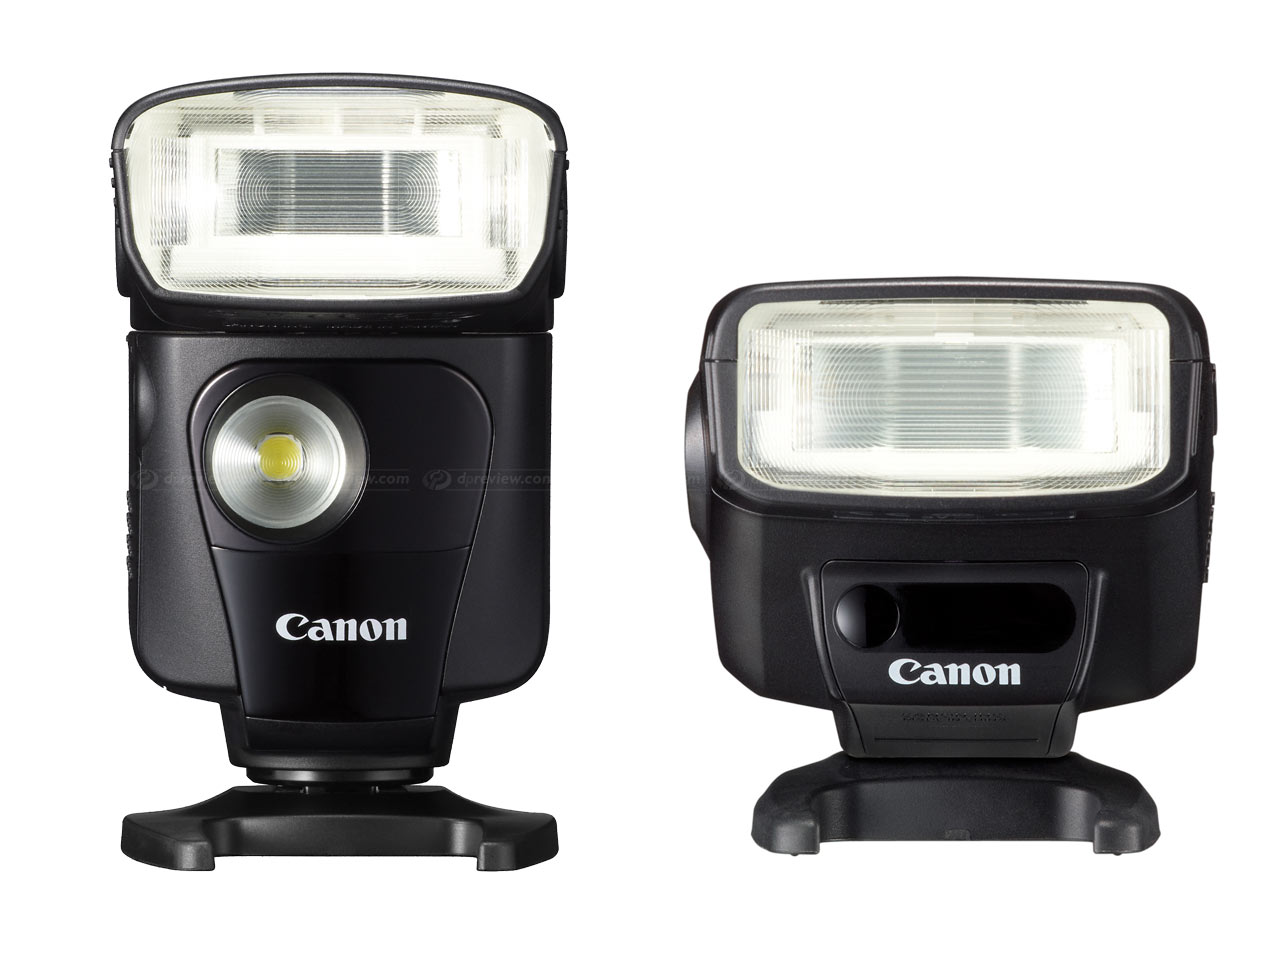 canon speedlite 270ex ii review